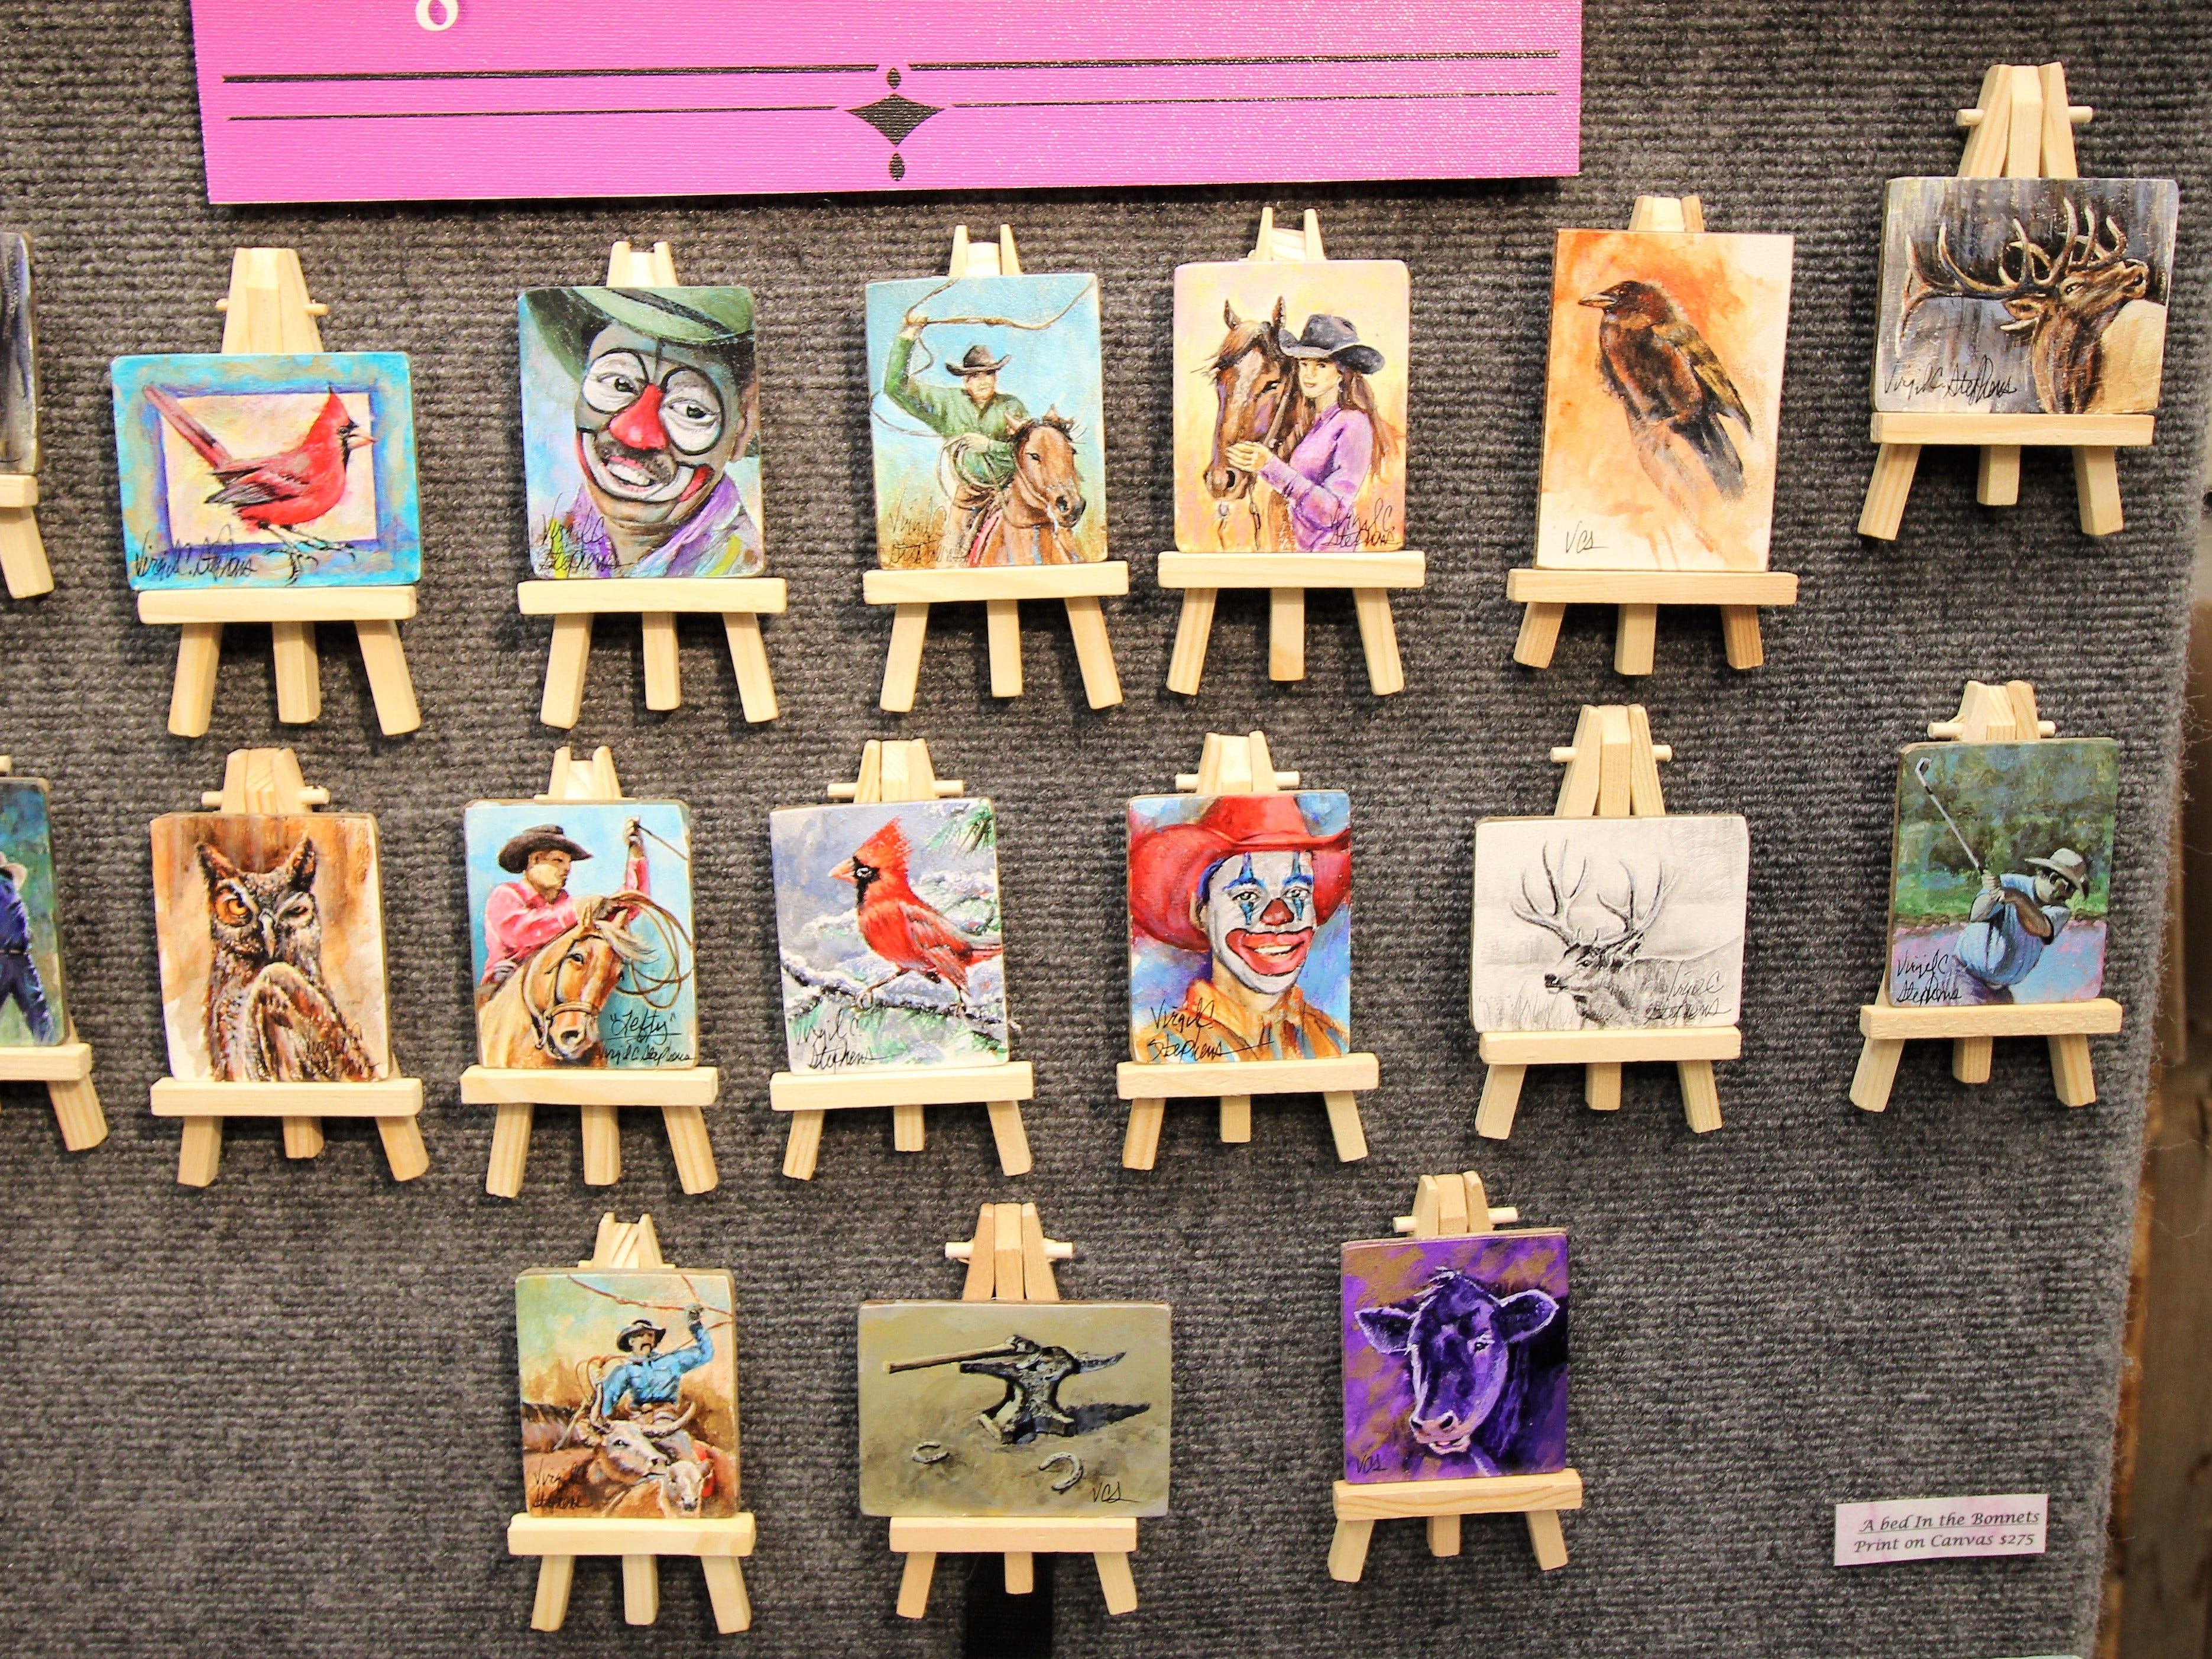 Miniature paintings were just some of the amazing art that could be seen at the Vines in the Pines.